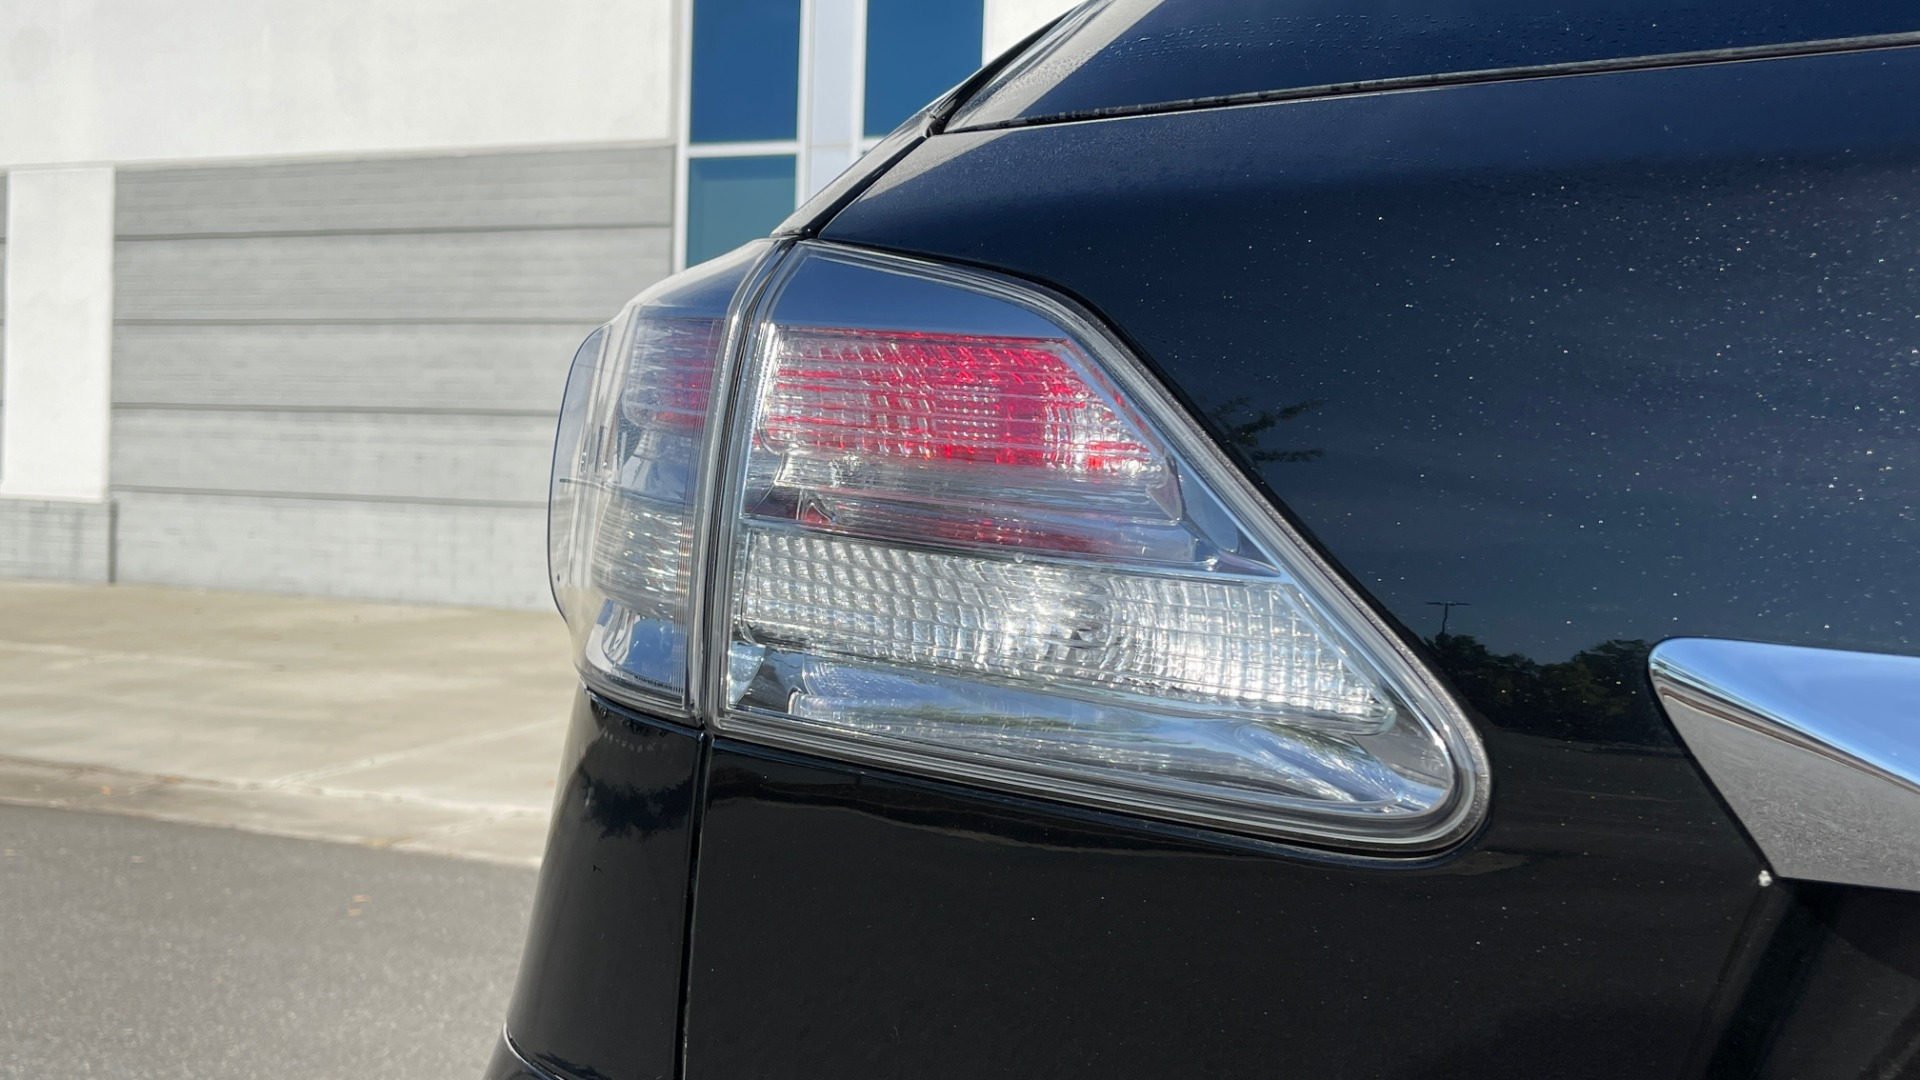 Used 2011 Lexus RX 350 PREMIUM / TOWING PREP PKG / VENTILATED STS / SUNROOF / REARVIEW for sale Sold at Formula Imports in Charlotte NC 28227 21